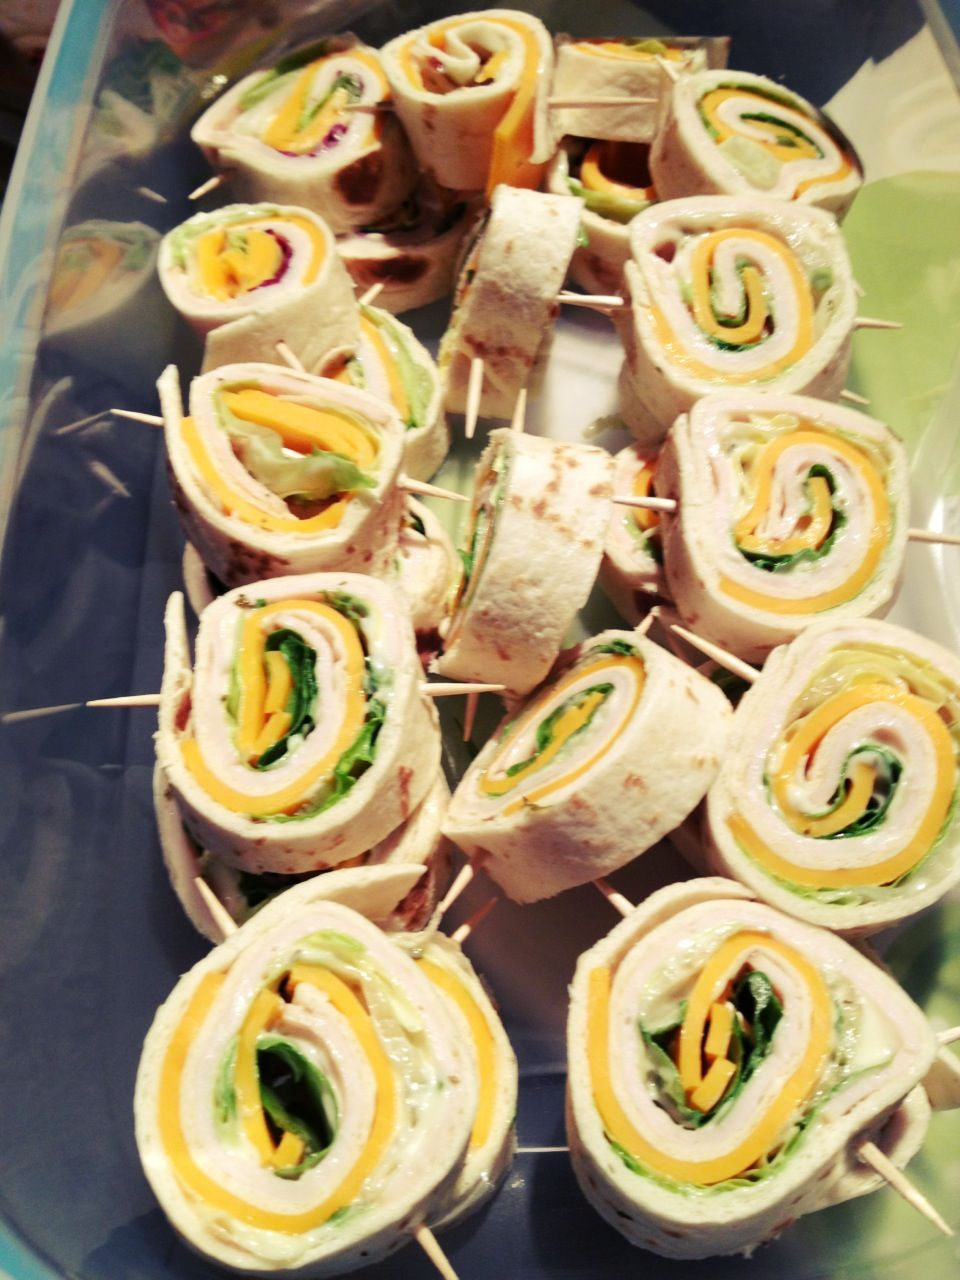 Canapés Wraps Mini Wraps Apetizer Homemade To Go With The Finger Foods